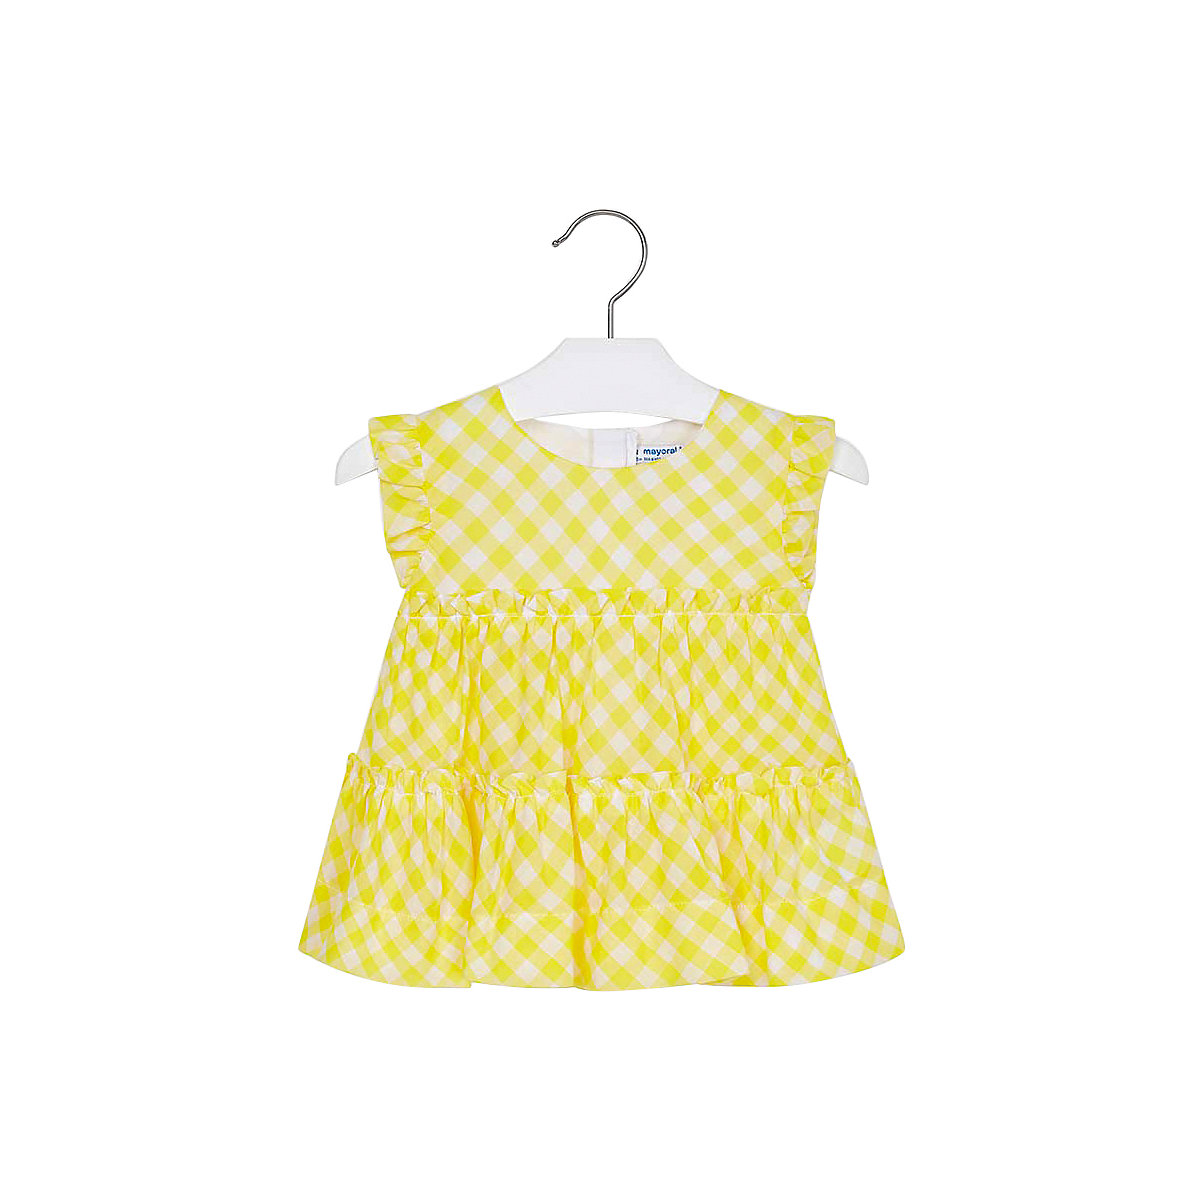 MAYORAL Blouses & Shirts 10692435 children clothing blouse for girls mayoral blouses